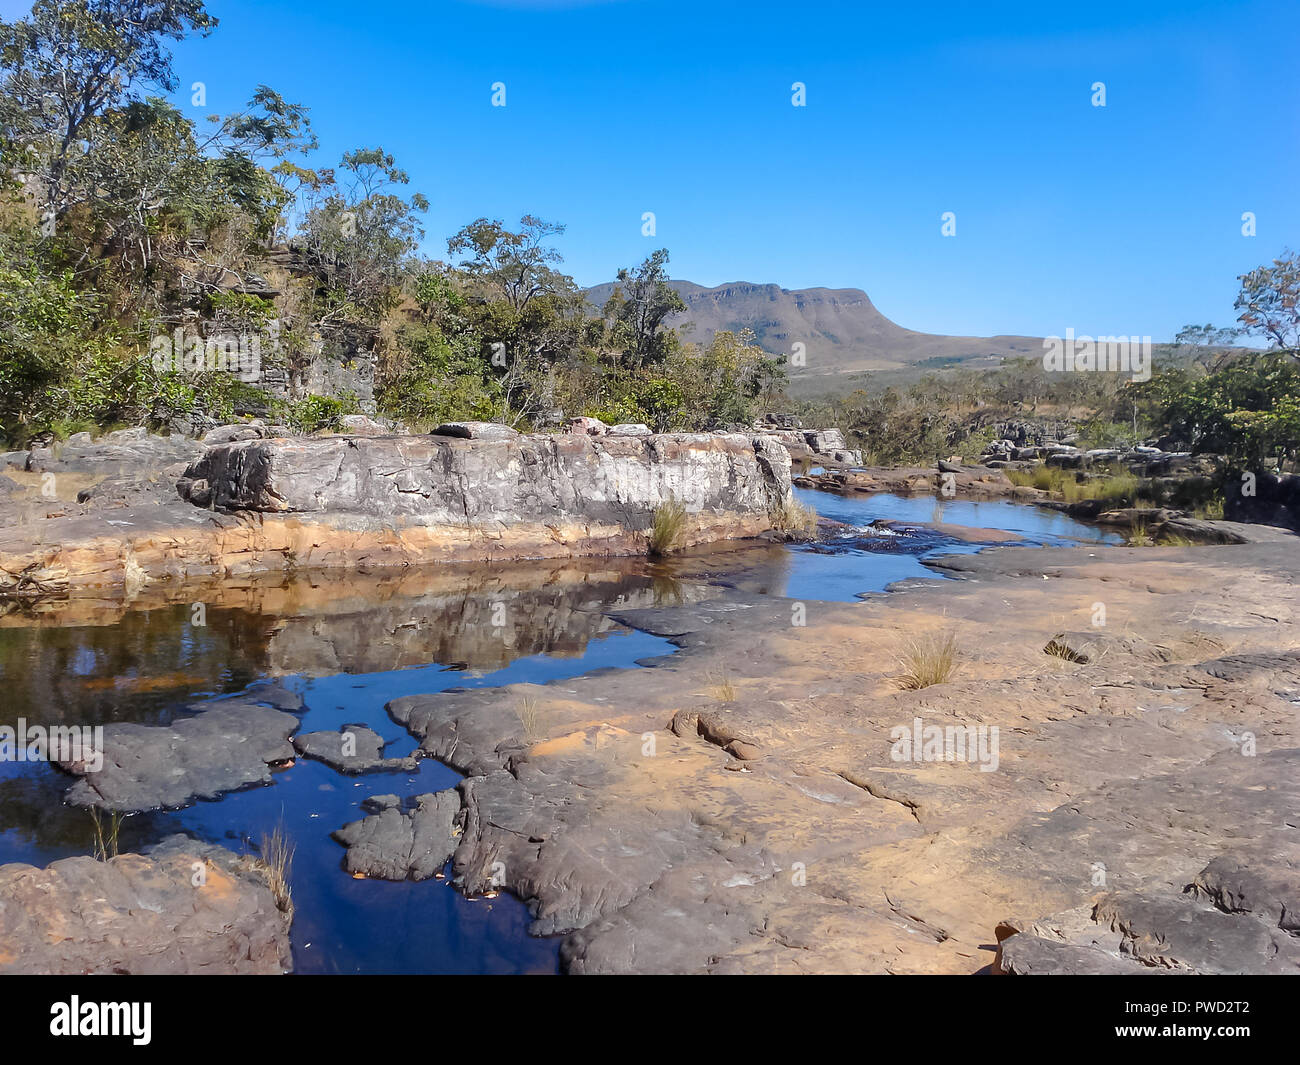 A relax view at the eye level of a stream running through the rocks in the foreground and mountains far away in the background - Stock Image